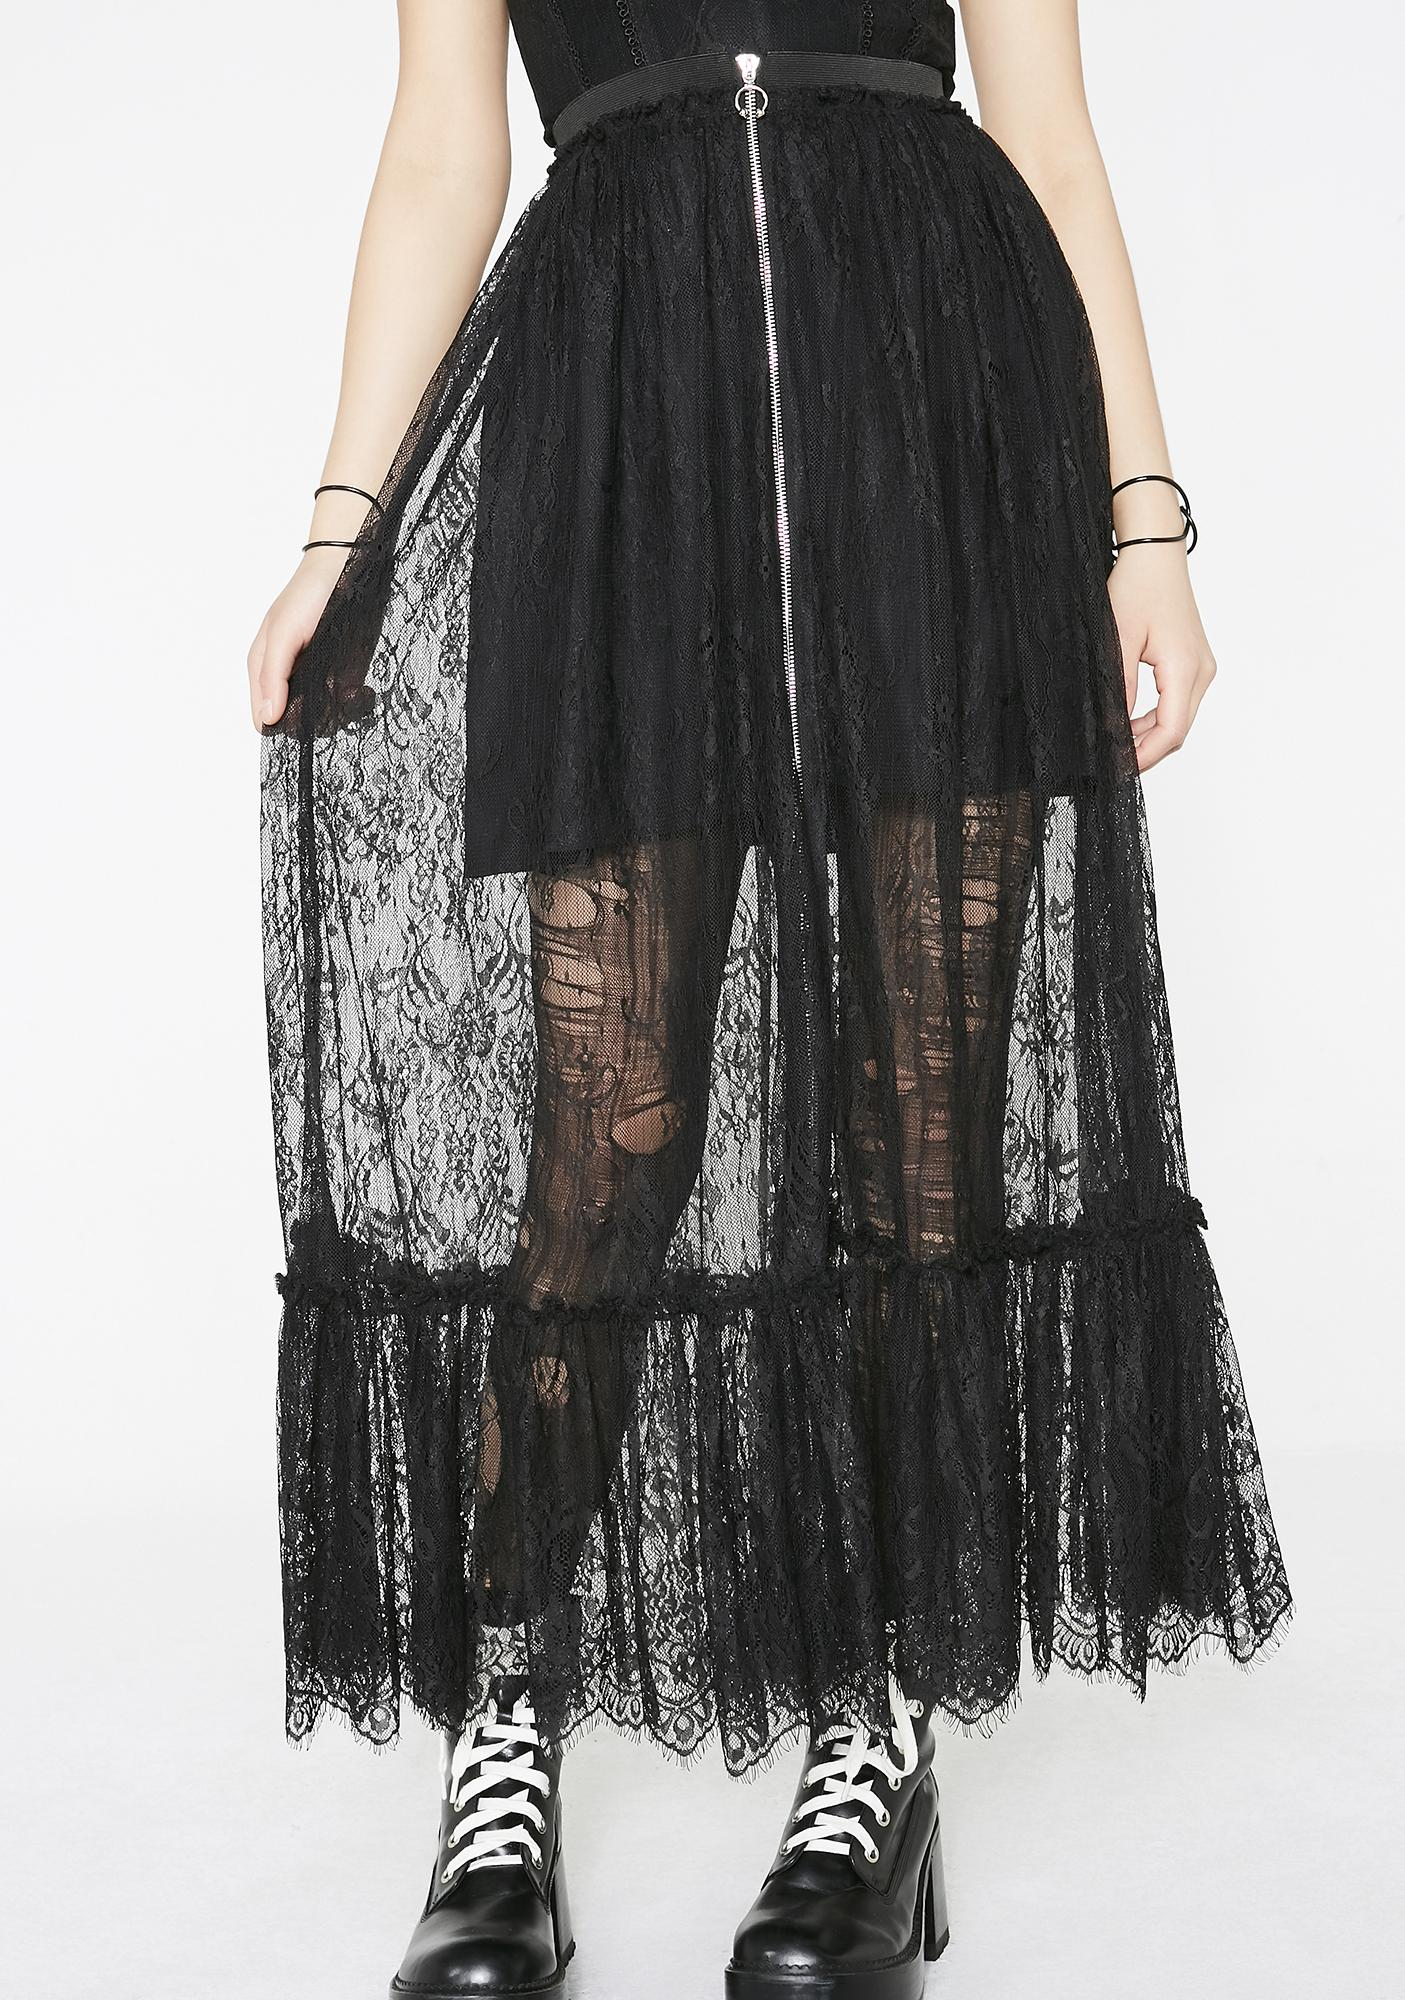 60773d5c913 Punk Rave Gothic Zipper Lace Half Skirt